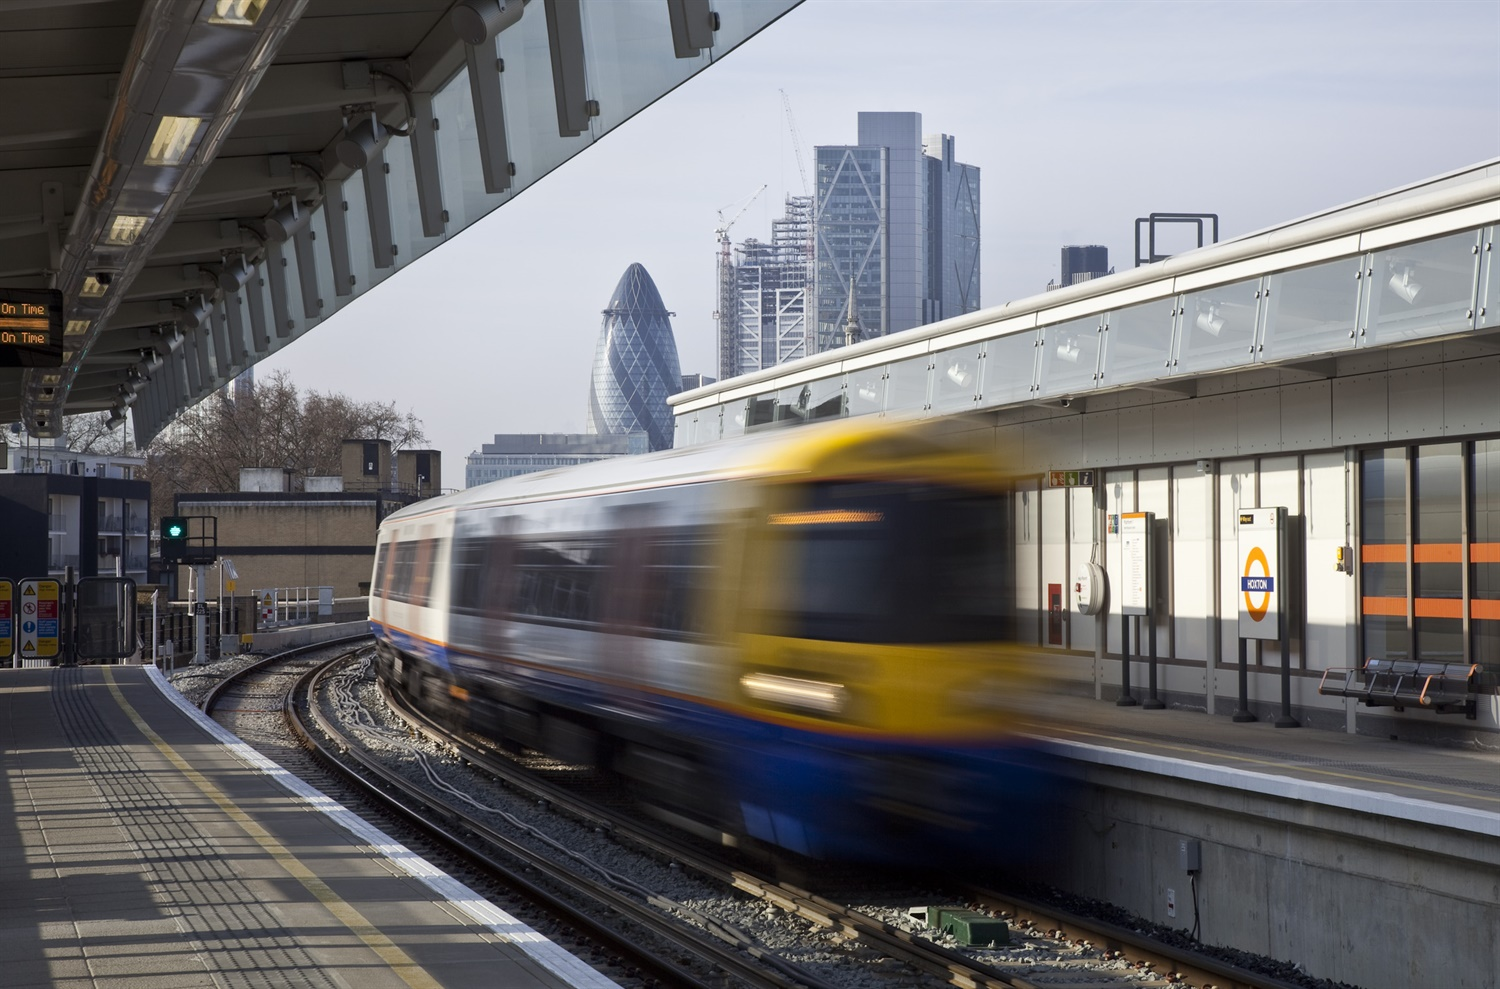 TfL takeover of London rail could be 'Crossrail 3' – Lord Adonis